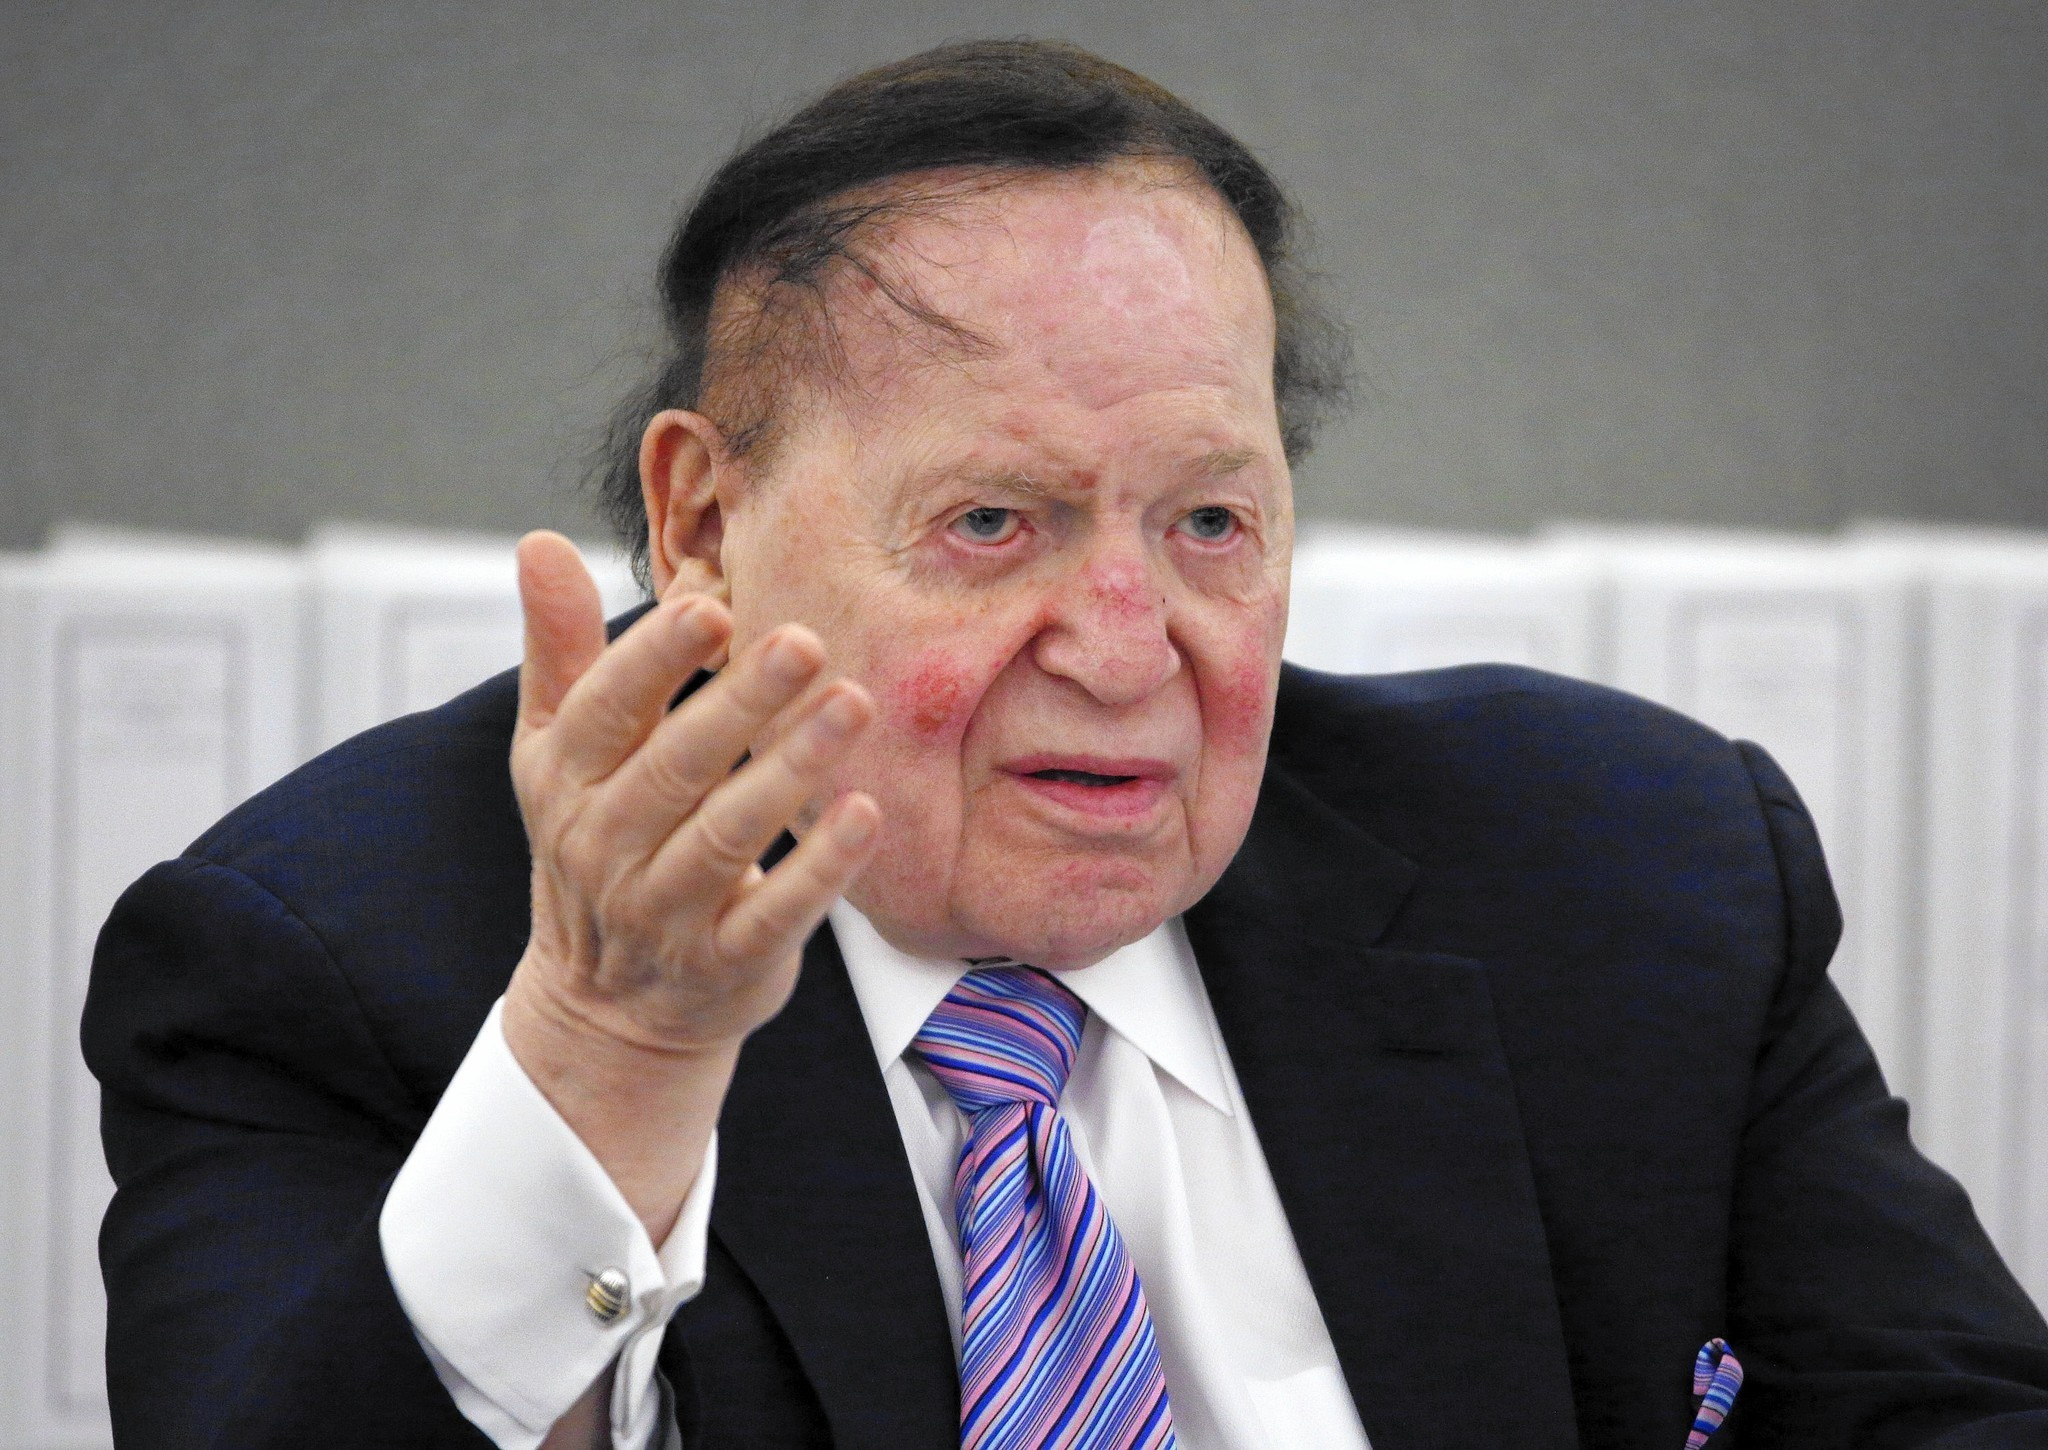 Image result for PHOTOS OF ADELSON OR WYNN